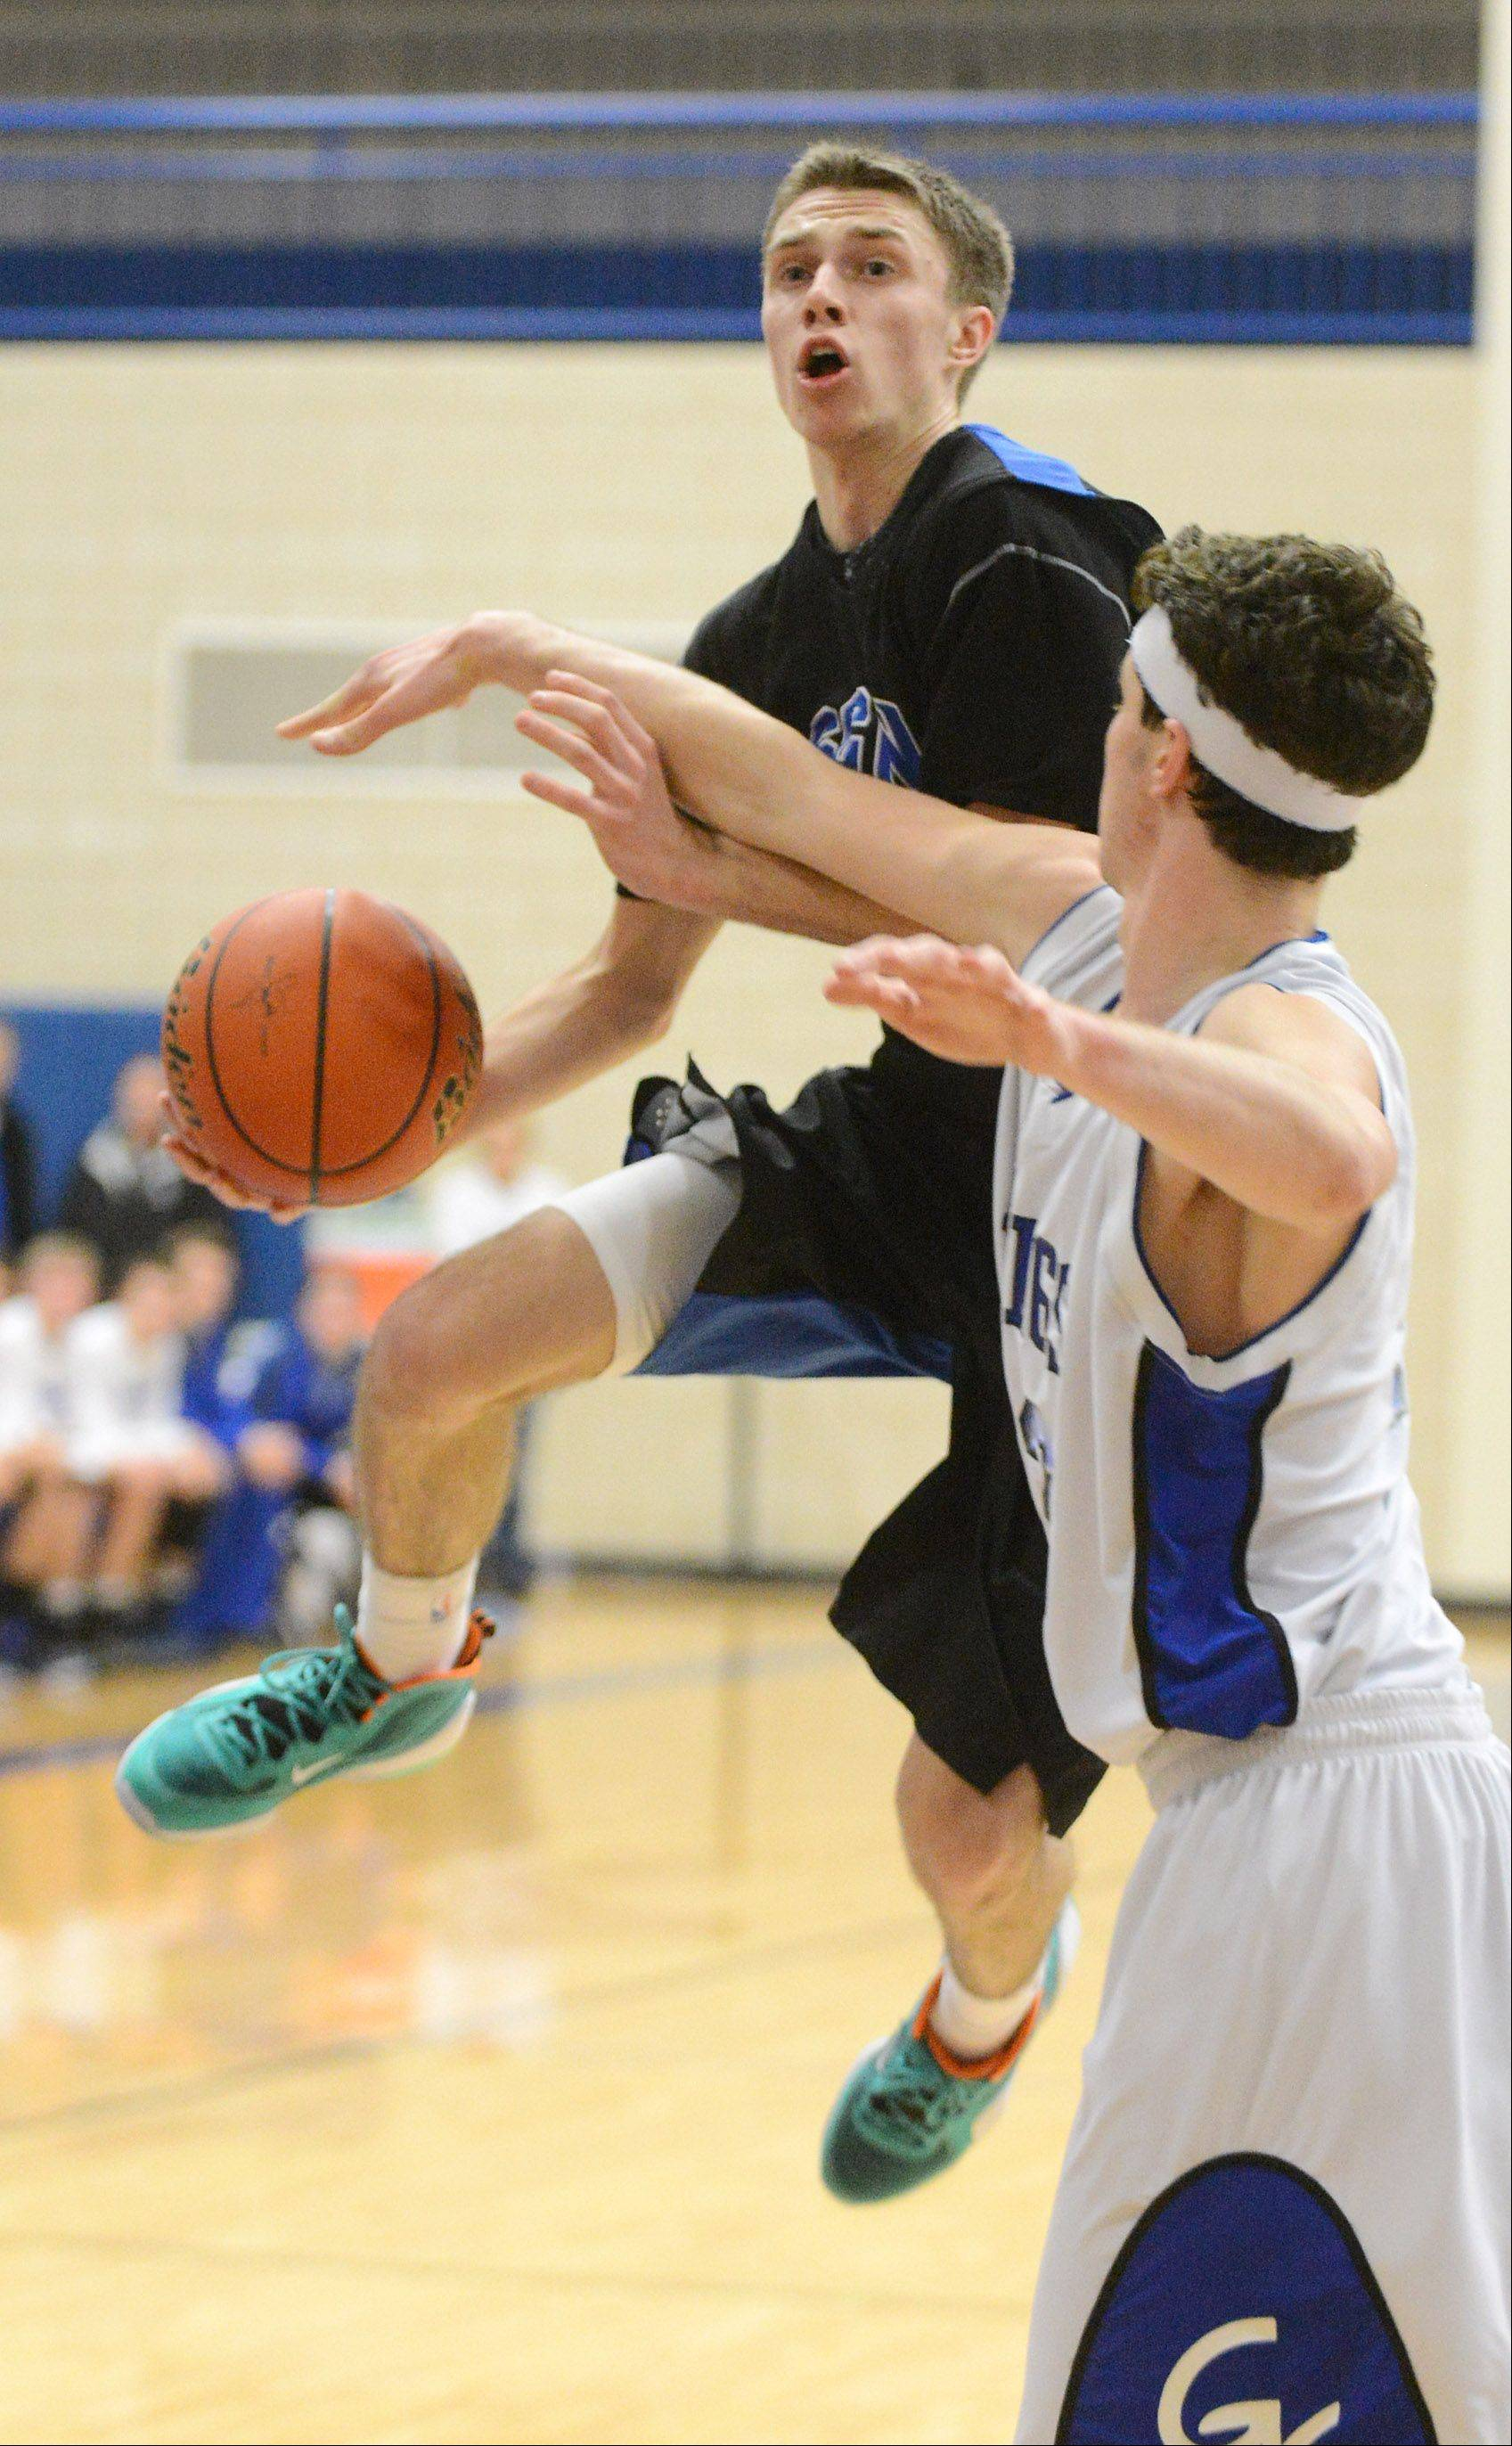 St. Charles North's Alec Goetz (1) drives to the basket as he is defended by Geneva's Mike Landi (52) during Friday's game in Geneva. �